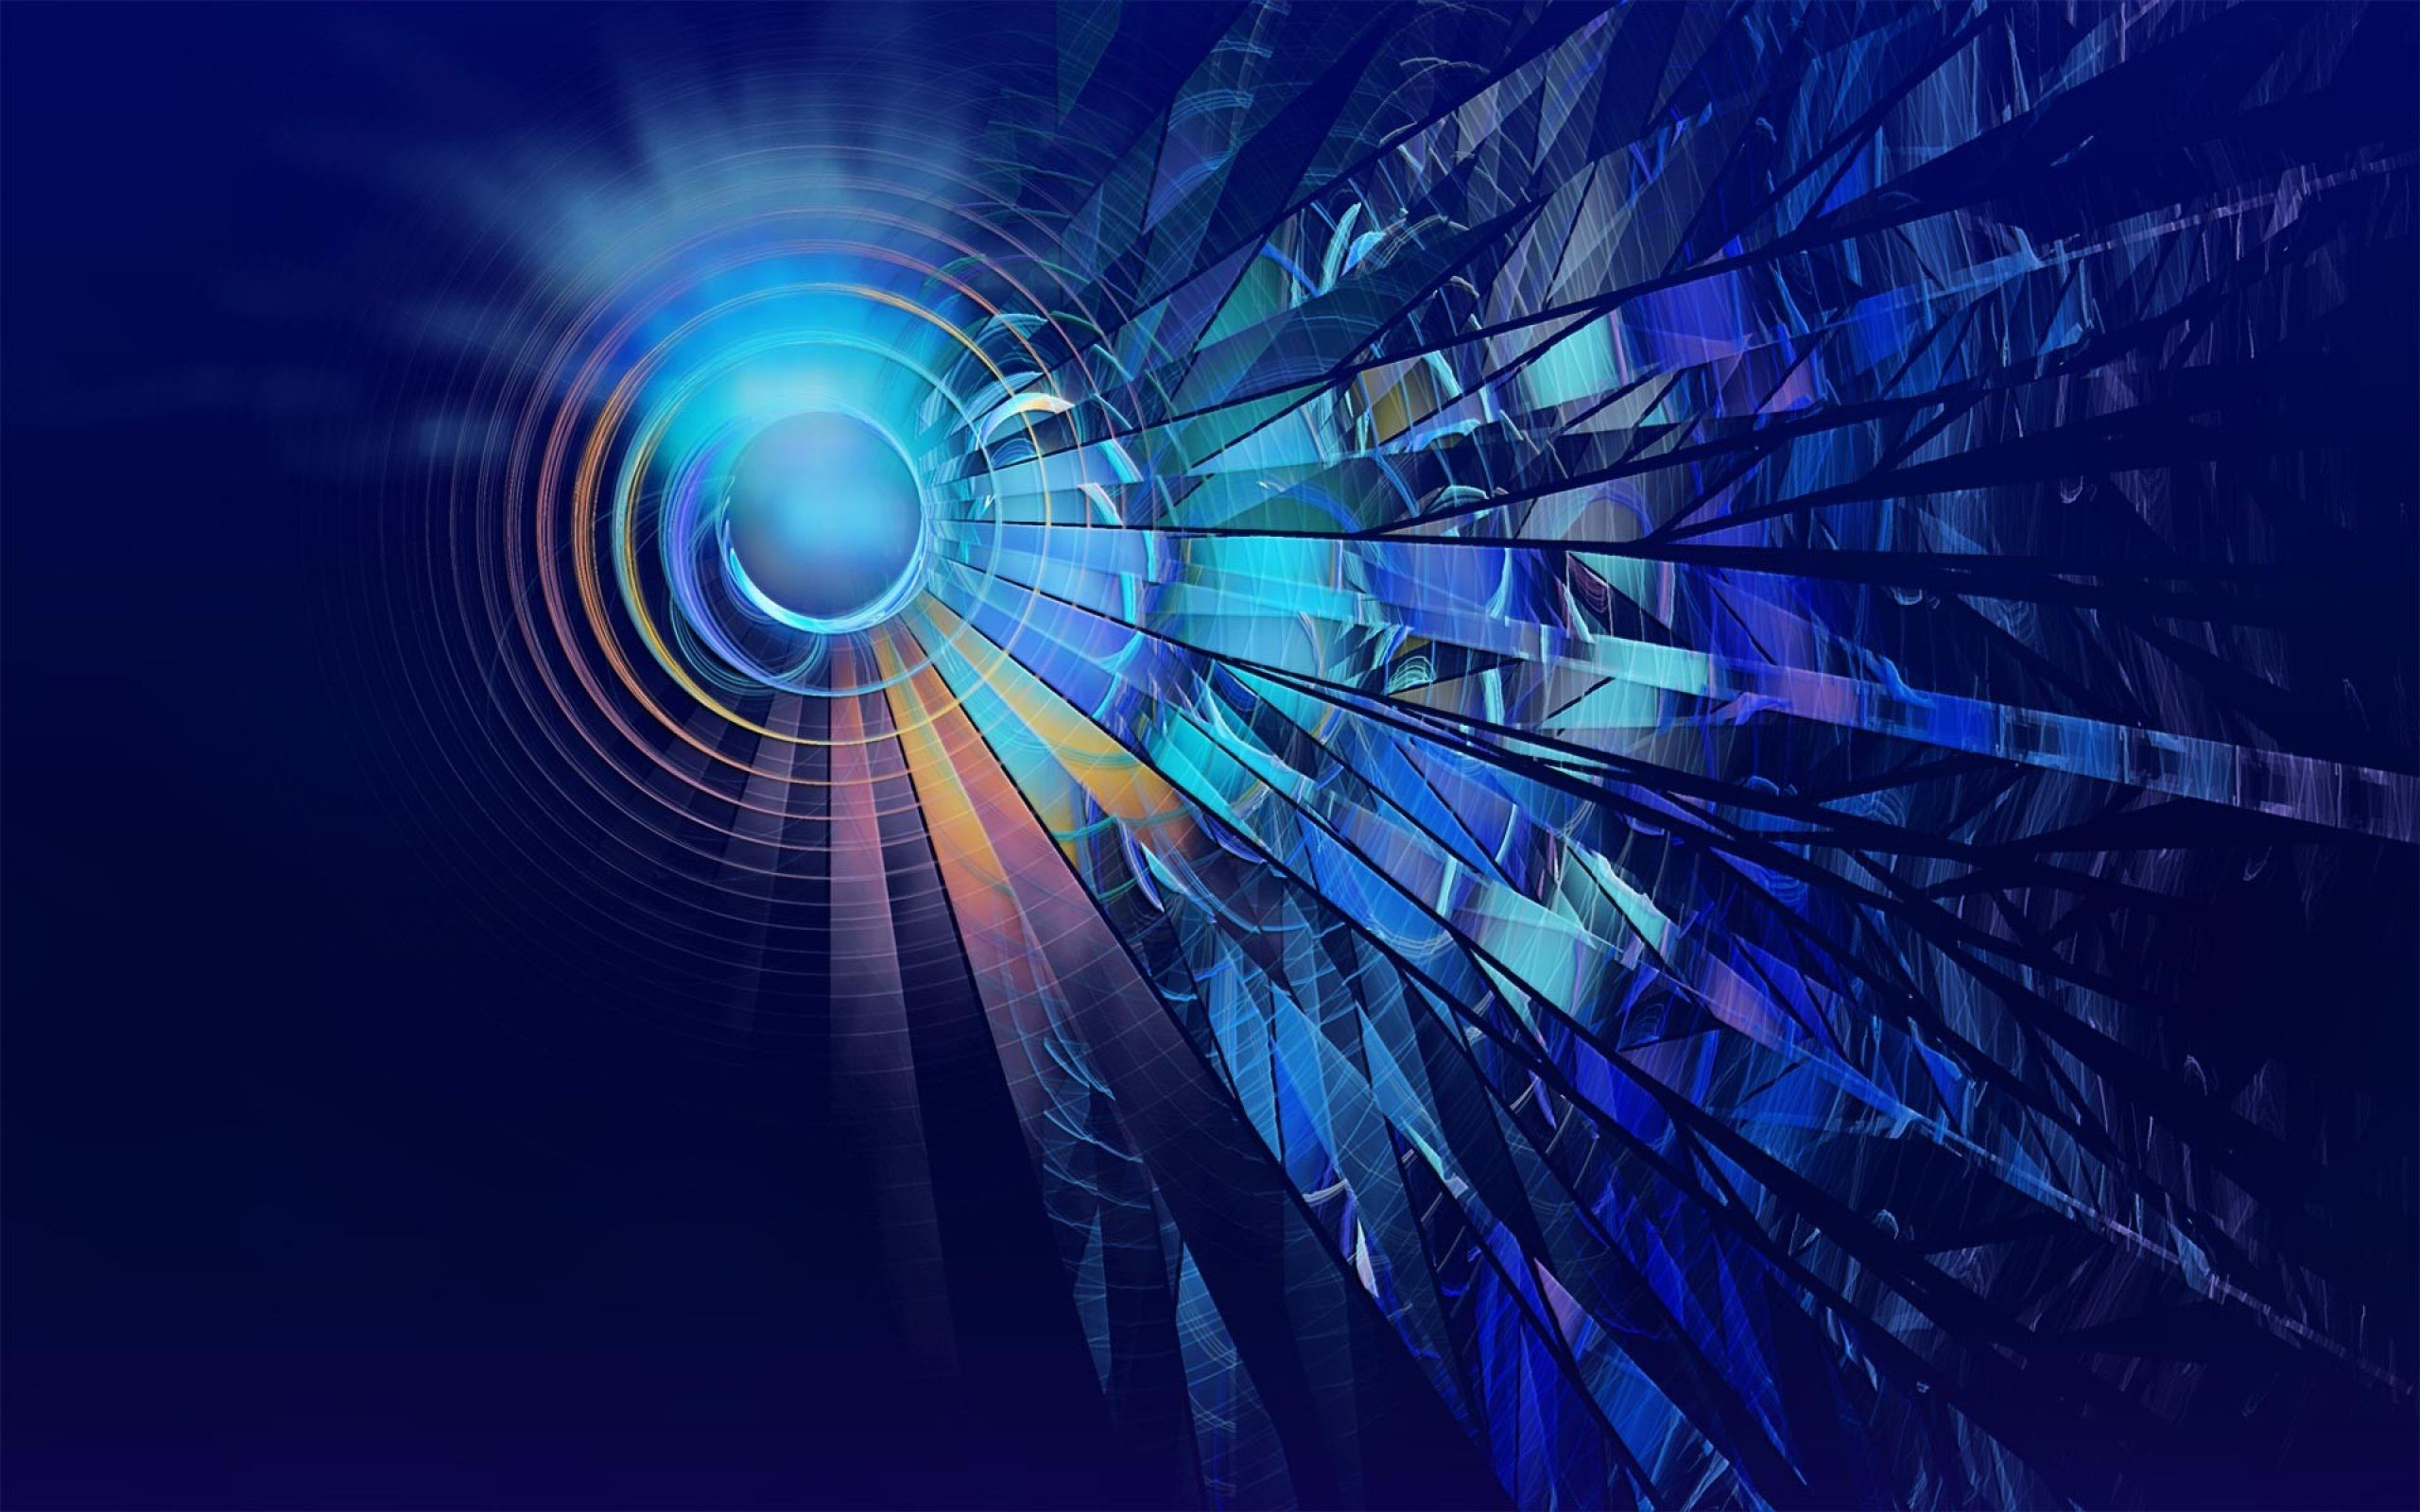 Blue Circle Abstract Wallpaper for desktop and mobile in high resolution  download. We have best